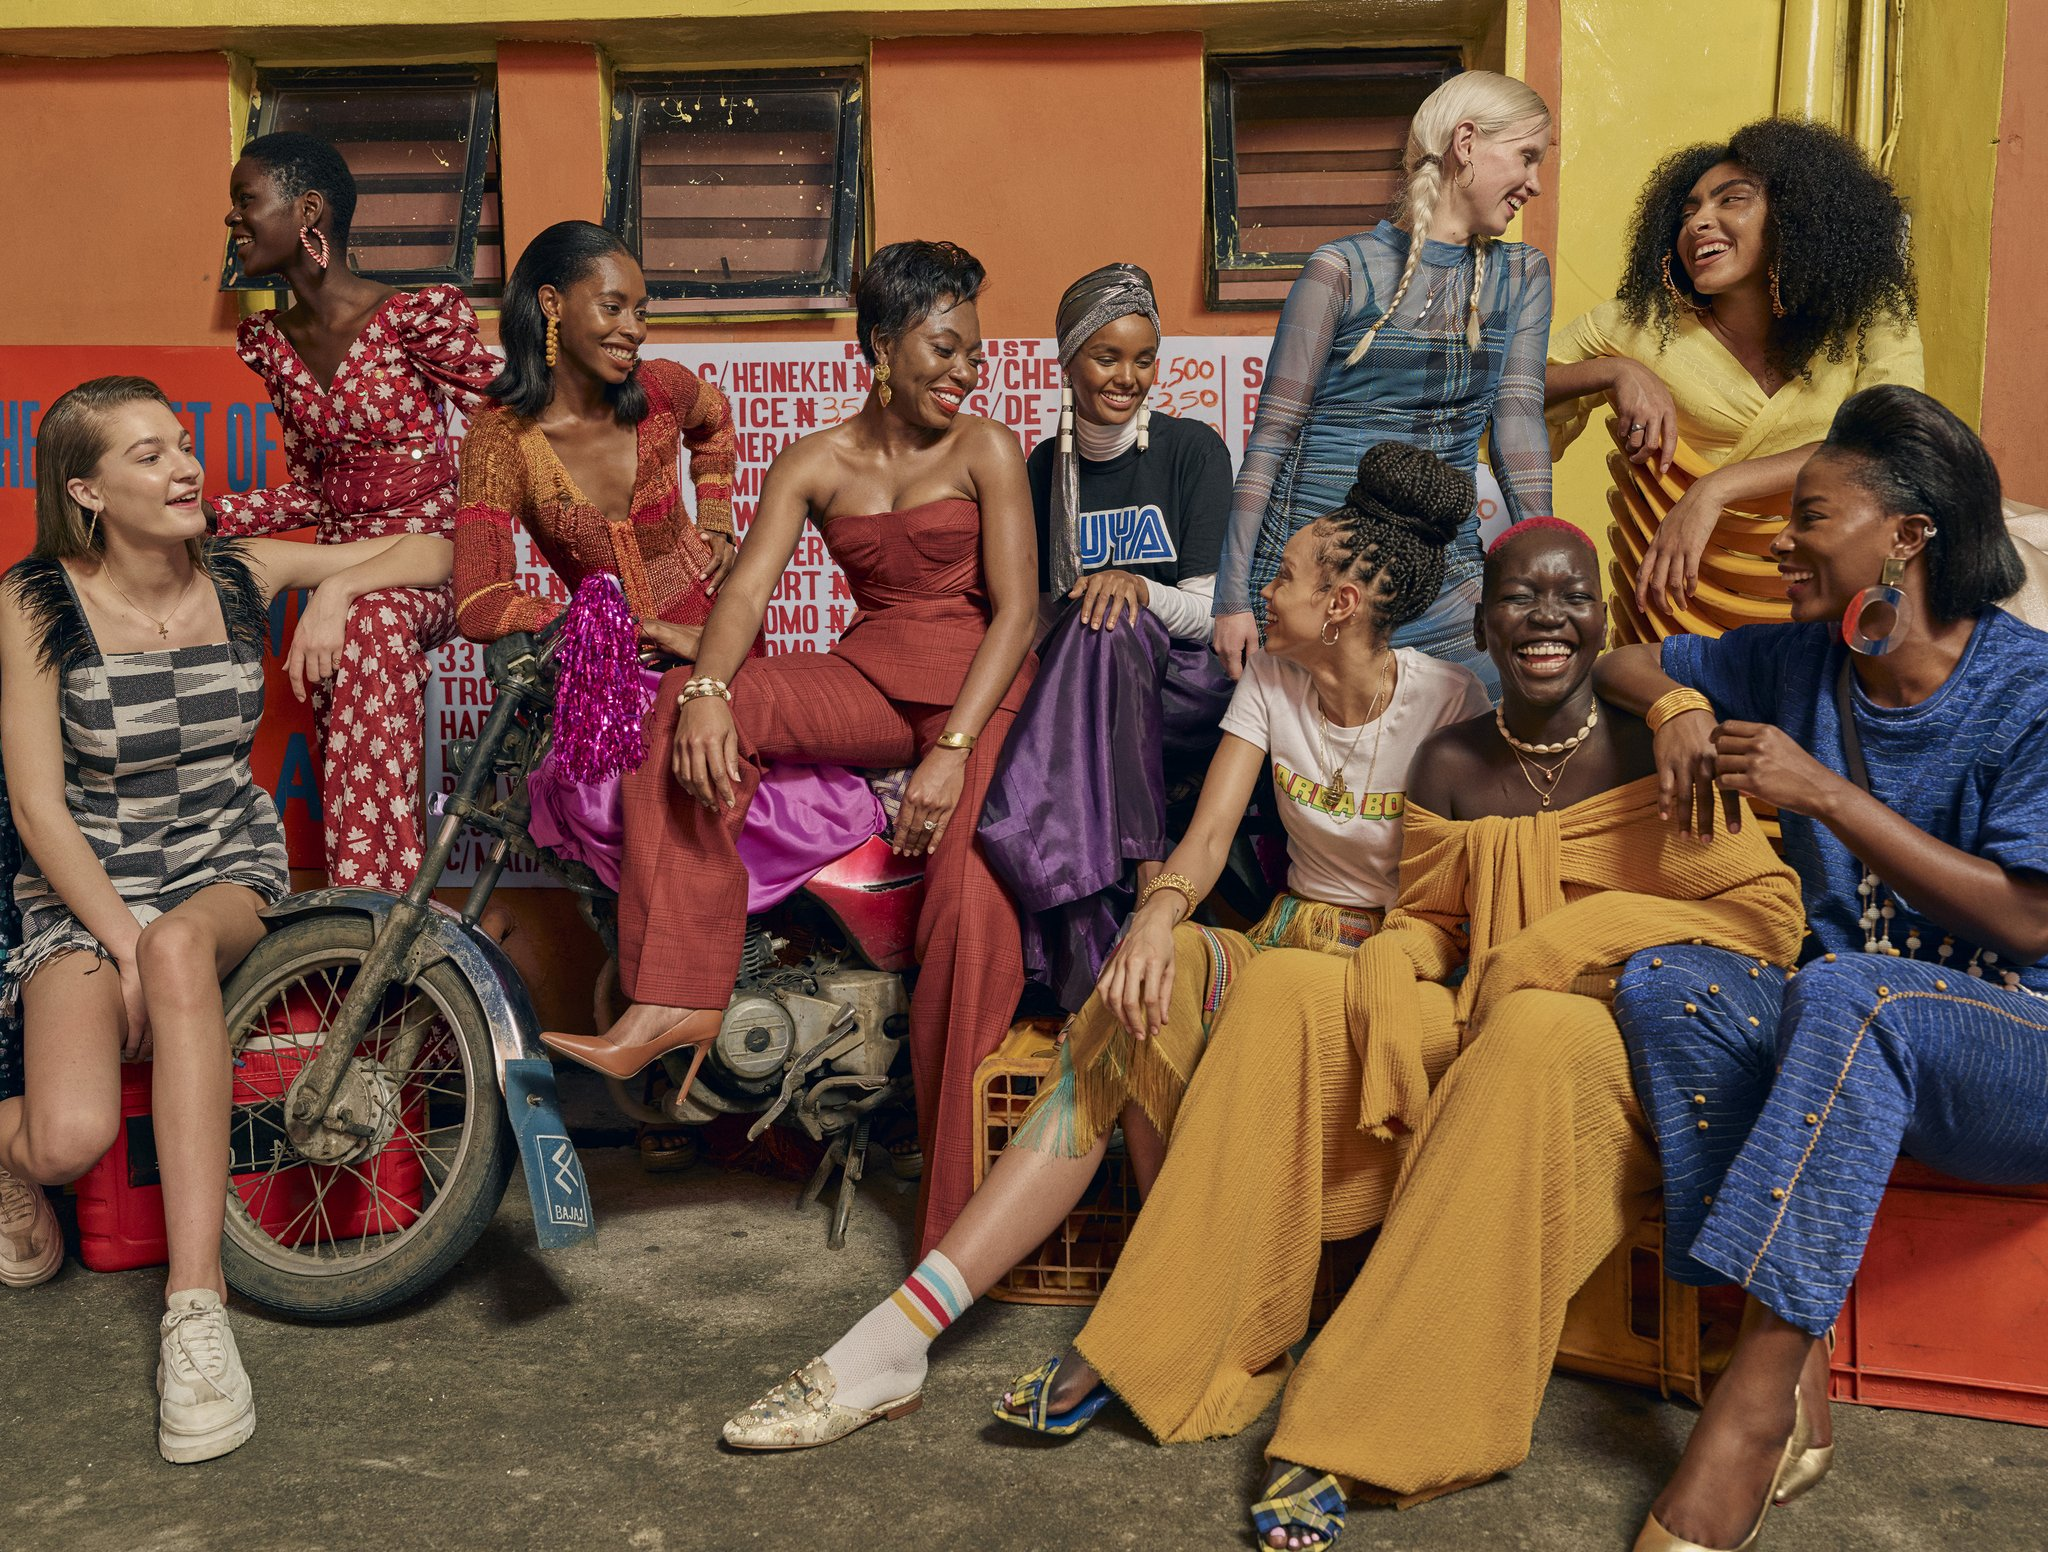 Uoma Beauty Spring 2019 Ad Campaign by Sprign Studios